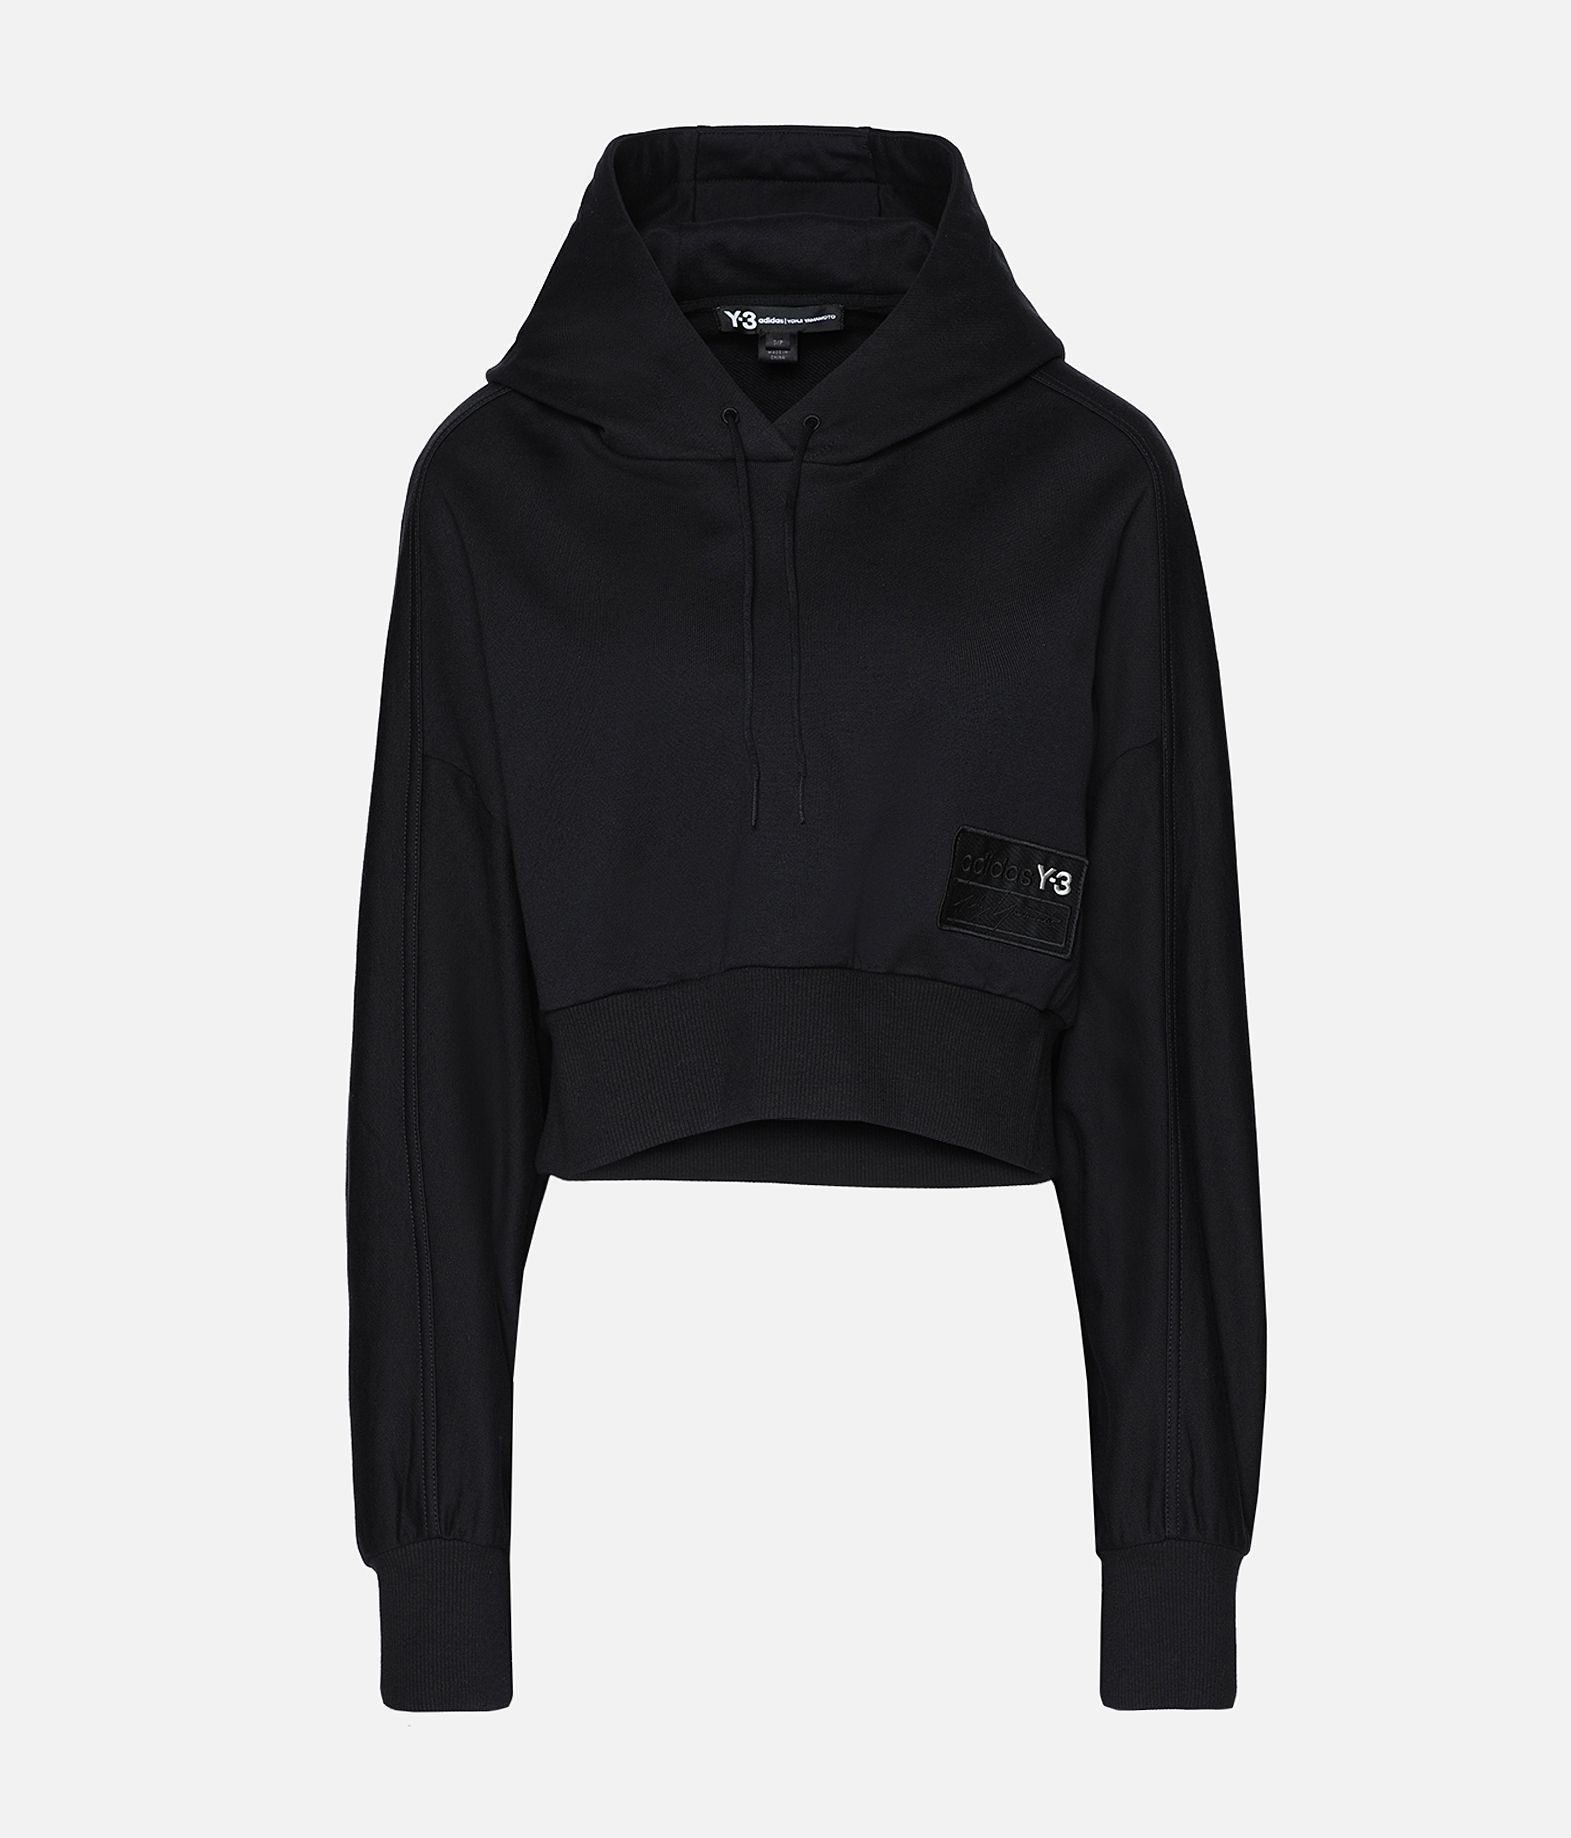 Y-3 Y-3 Stacked Badge Cropped Hoodie Hooded sweatshirt Woman f